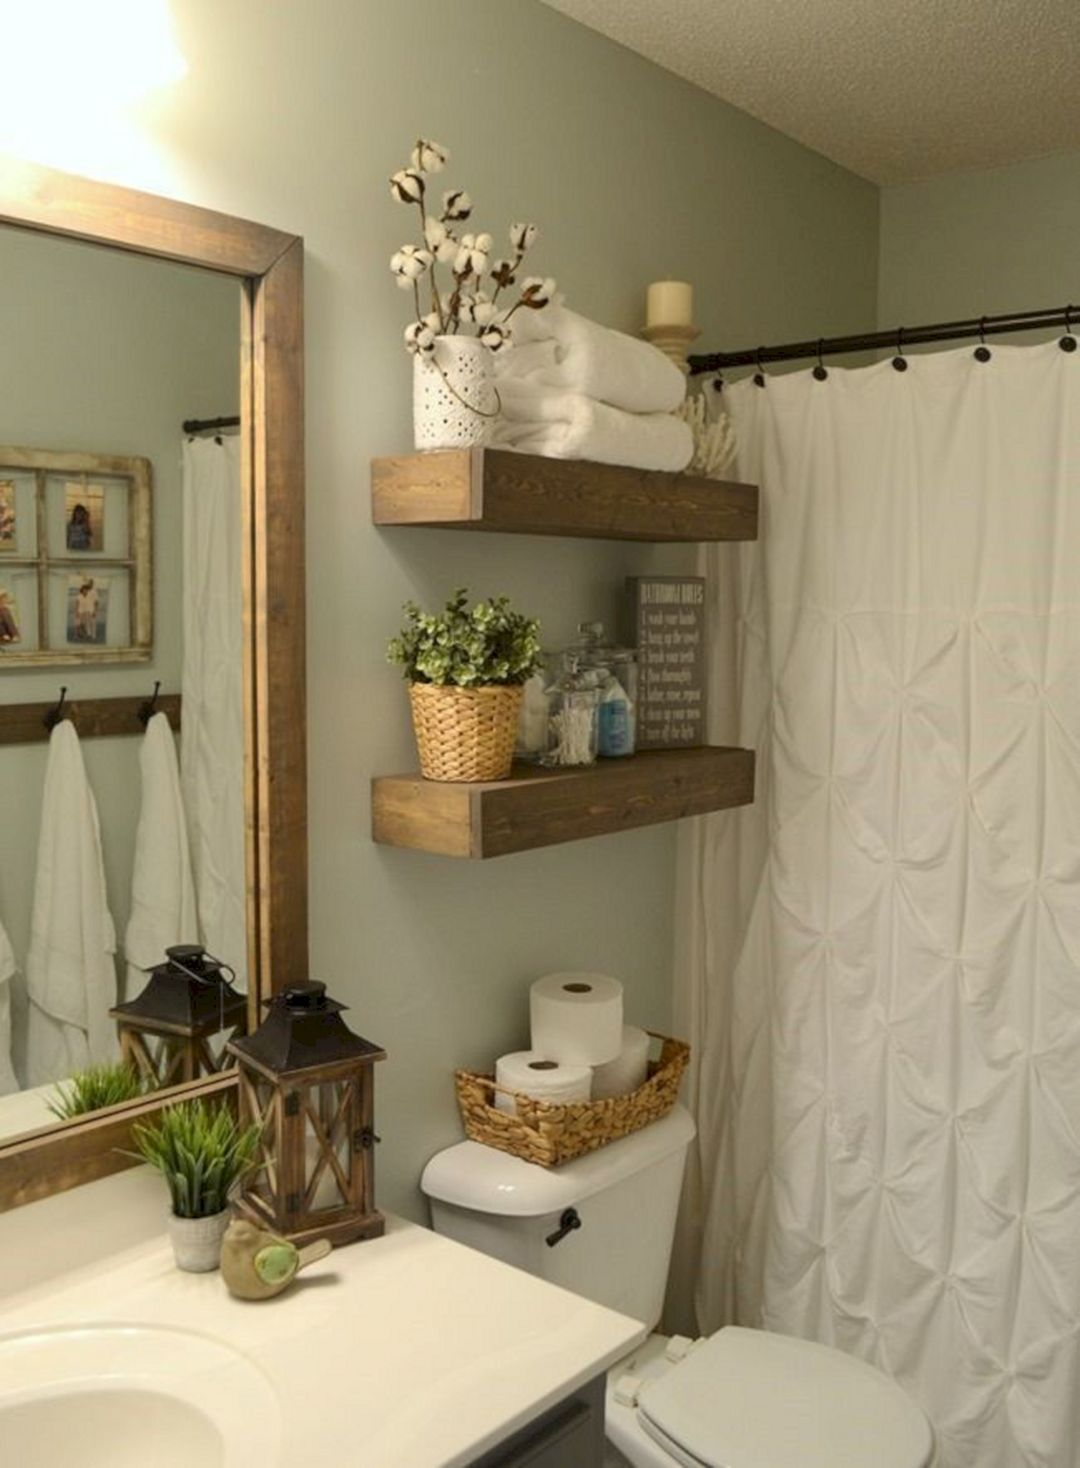 Ridiculous Ideas Floating Shelves Placement Lamps Floating Shelves Hallway House T Small Bathroom Furniture Rustic Wood Floating Shelves Wood Floating Shelves